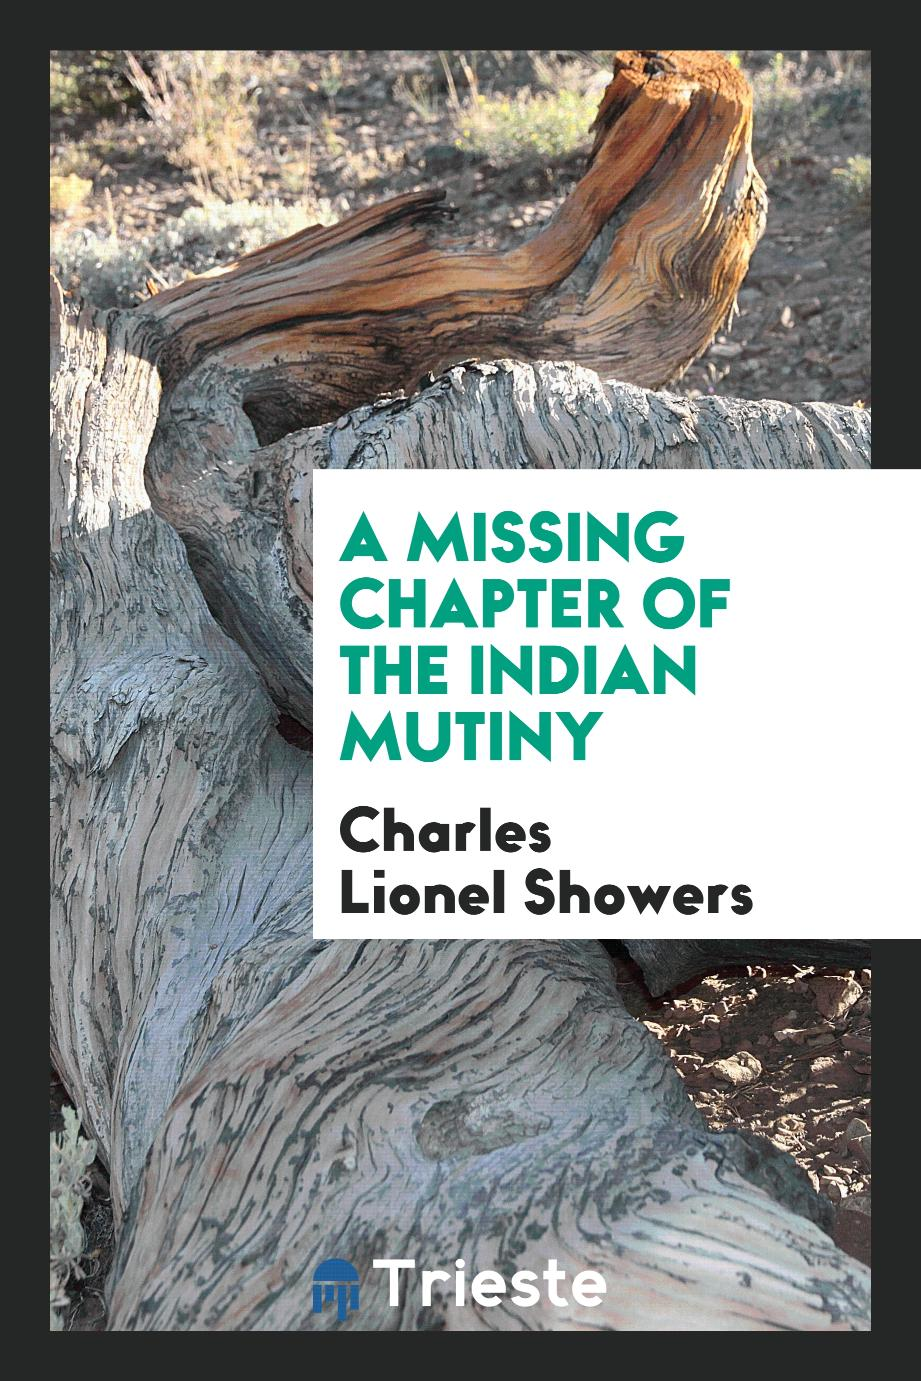 A Missing Chapter of the Indian Mutiny